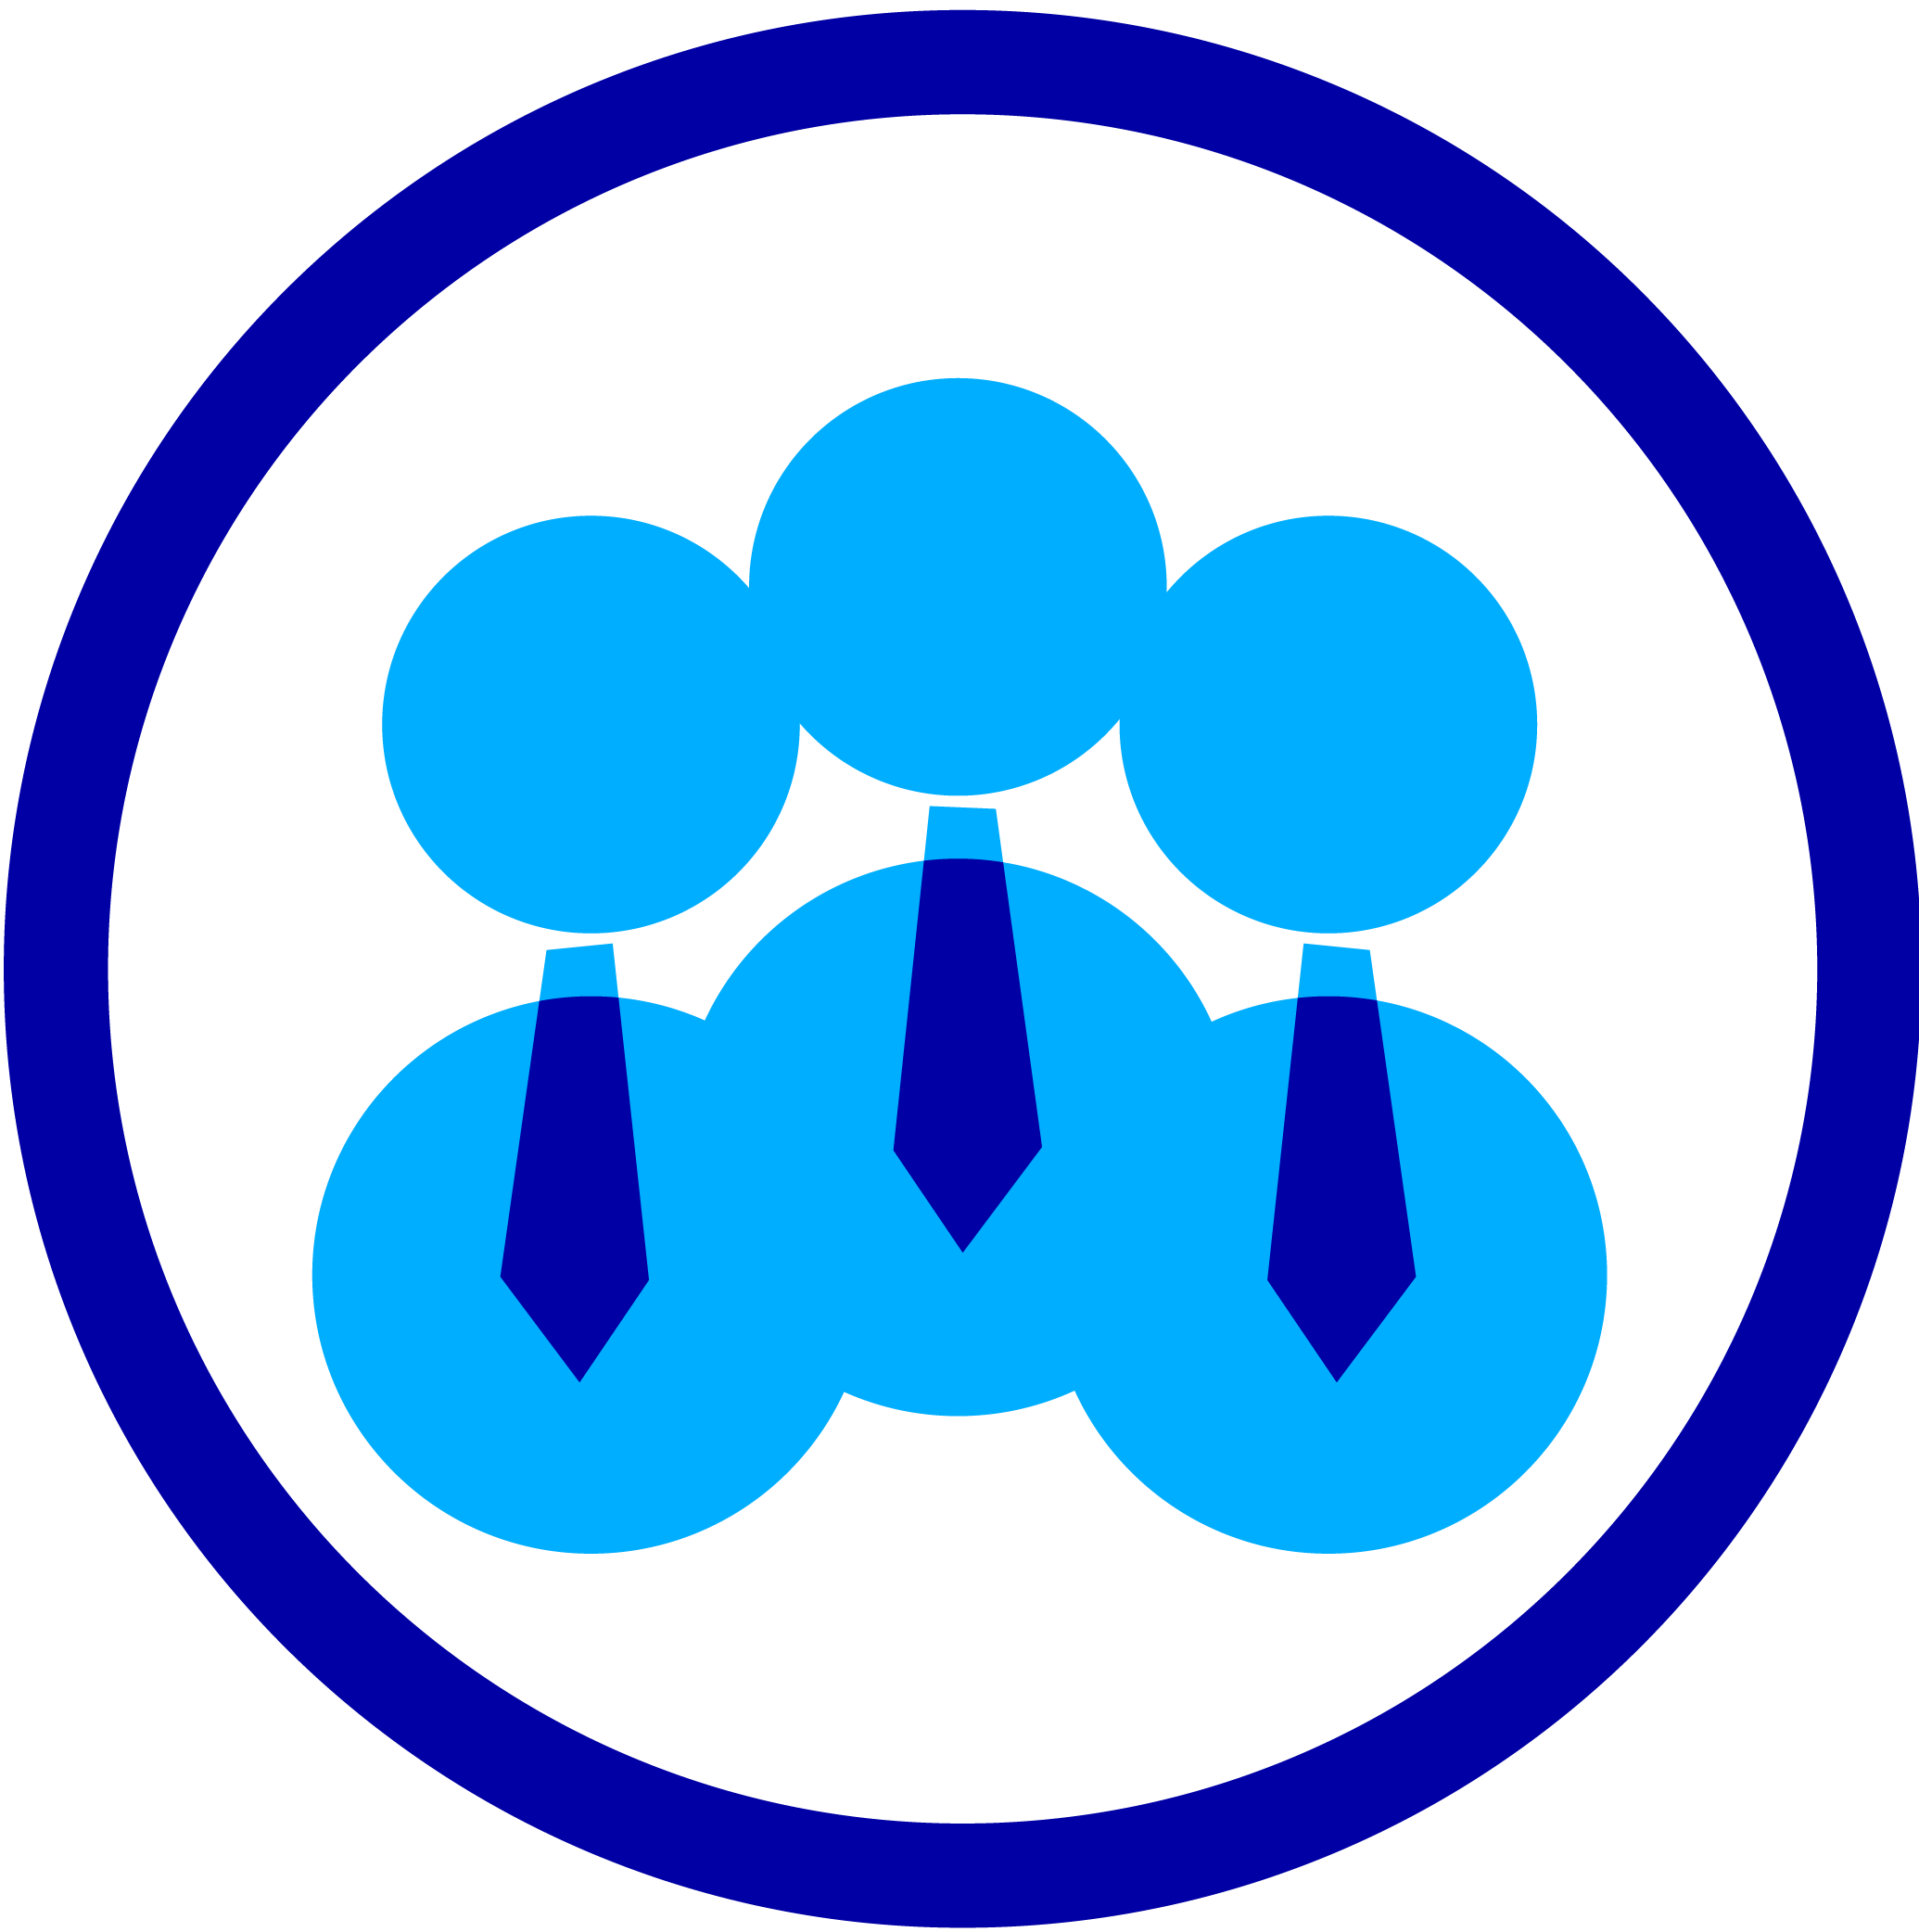 https://ca.fi-group.com/wp-content/uploads/sites/5/2021/02/blue-icons-set_1-59.png